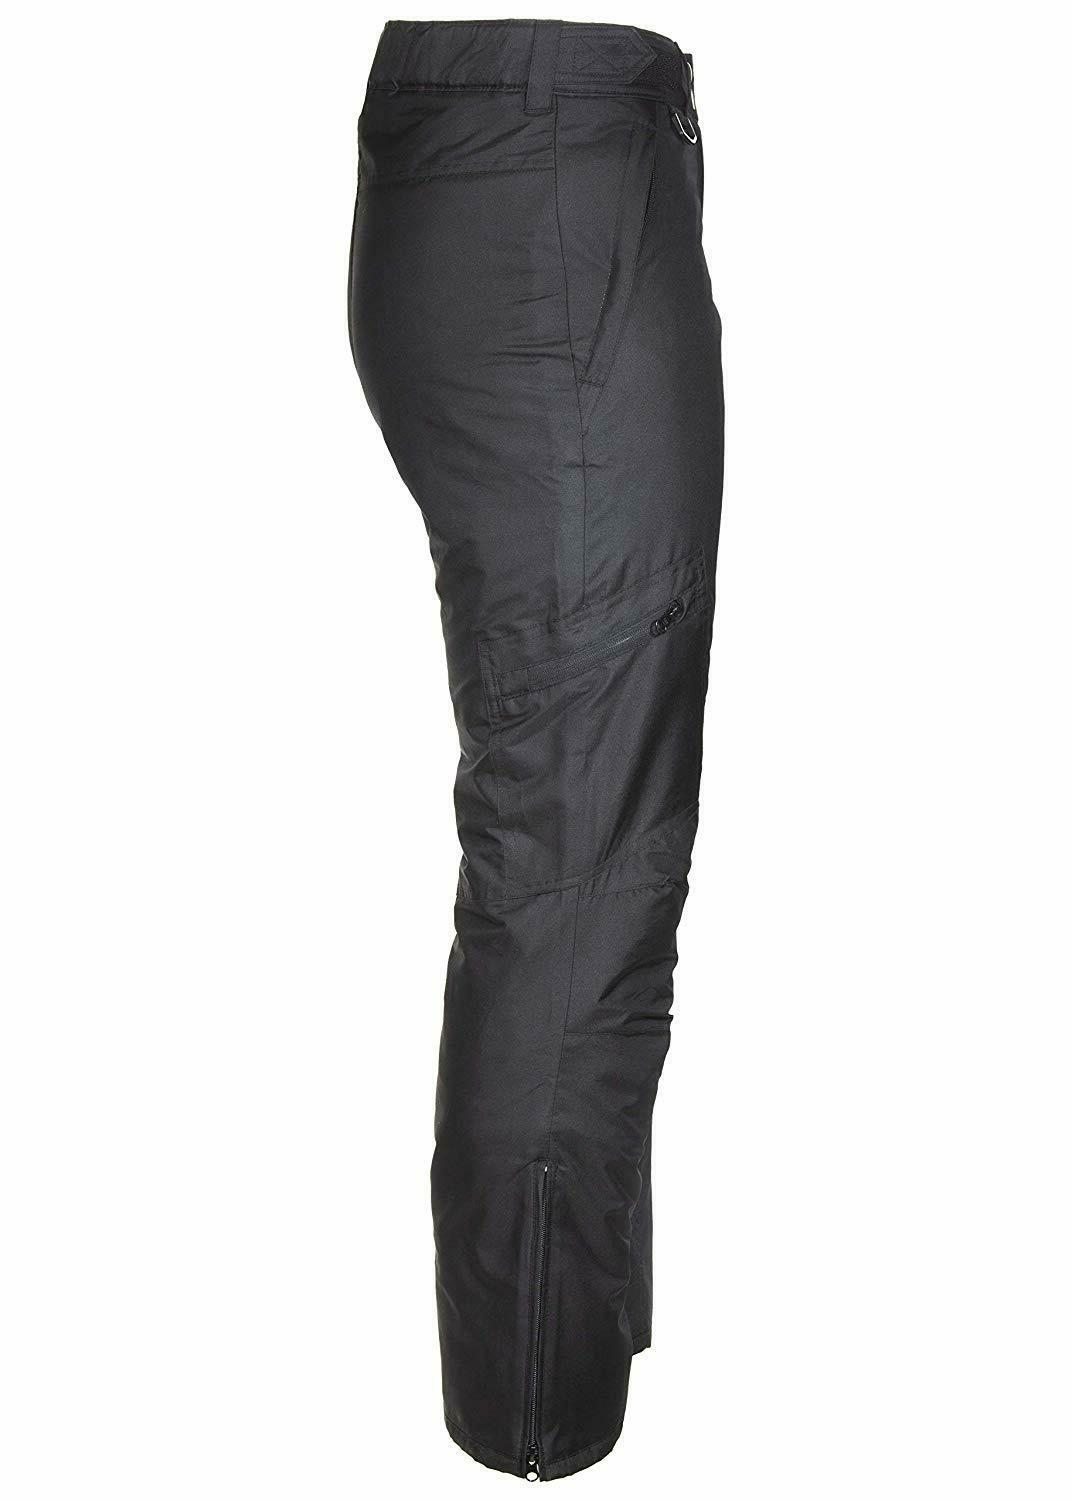 ARCTIC Insulated Pants SIZE SMALL - NWT